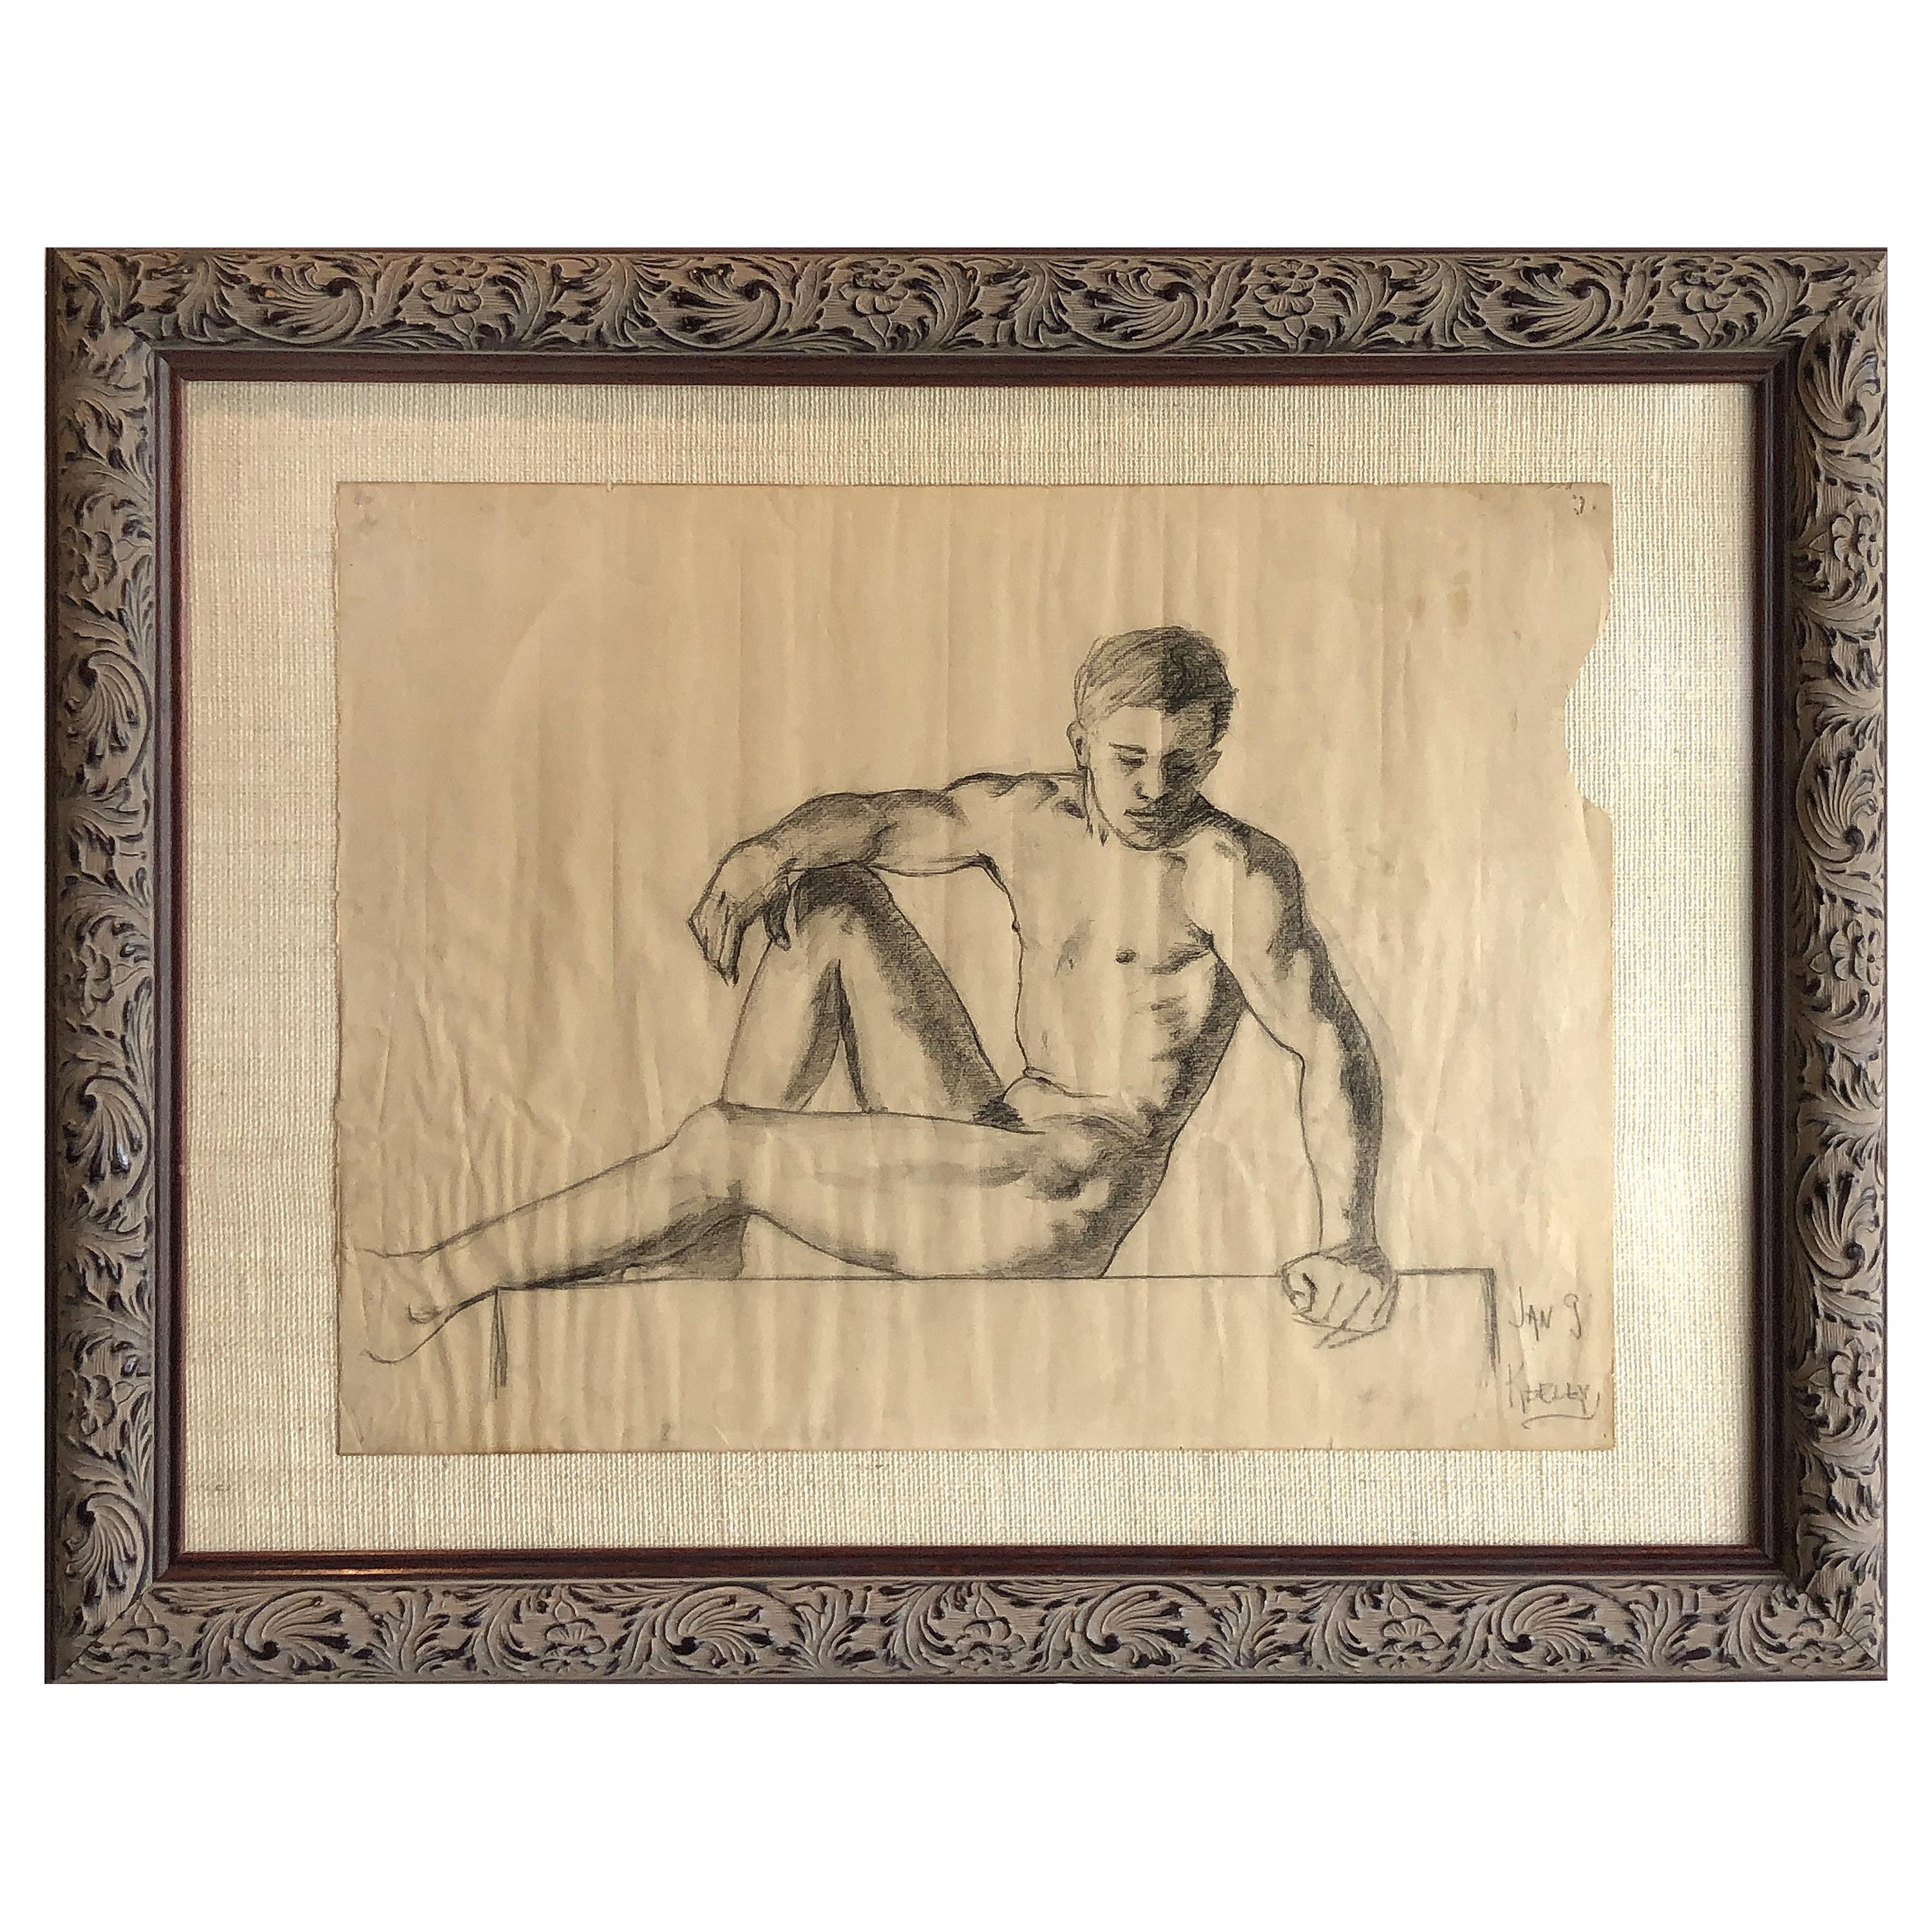 1940s Classical Male Nude Study Pencil Drawing